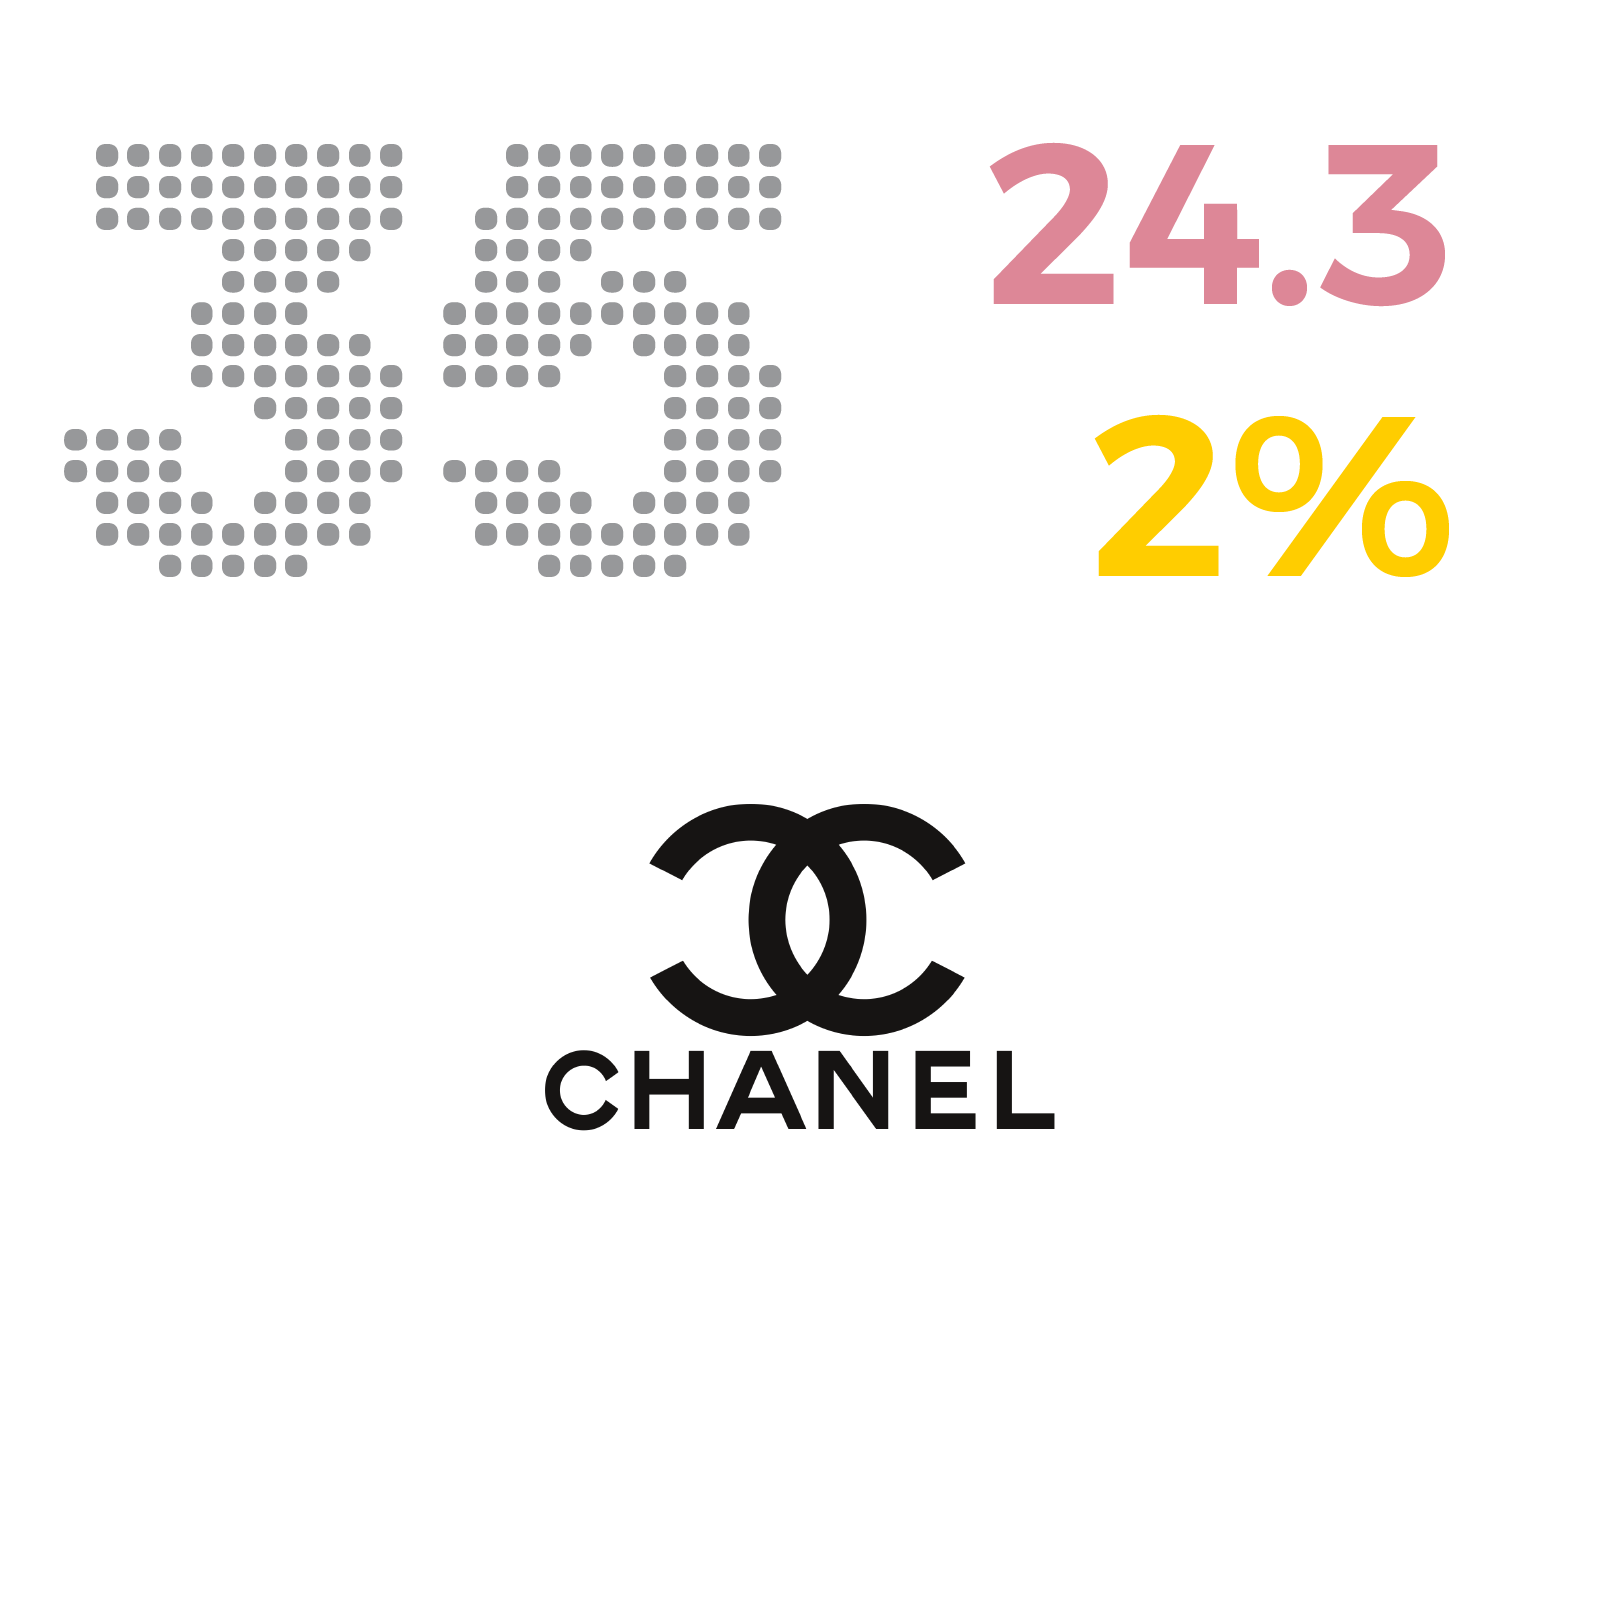 35_Chanel.png